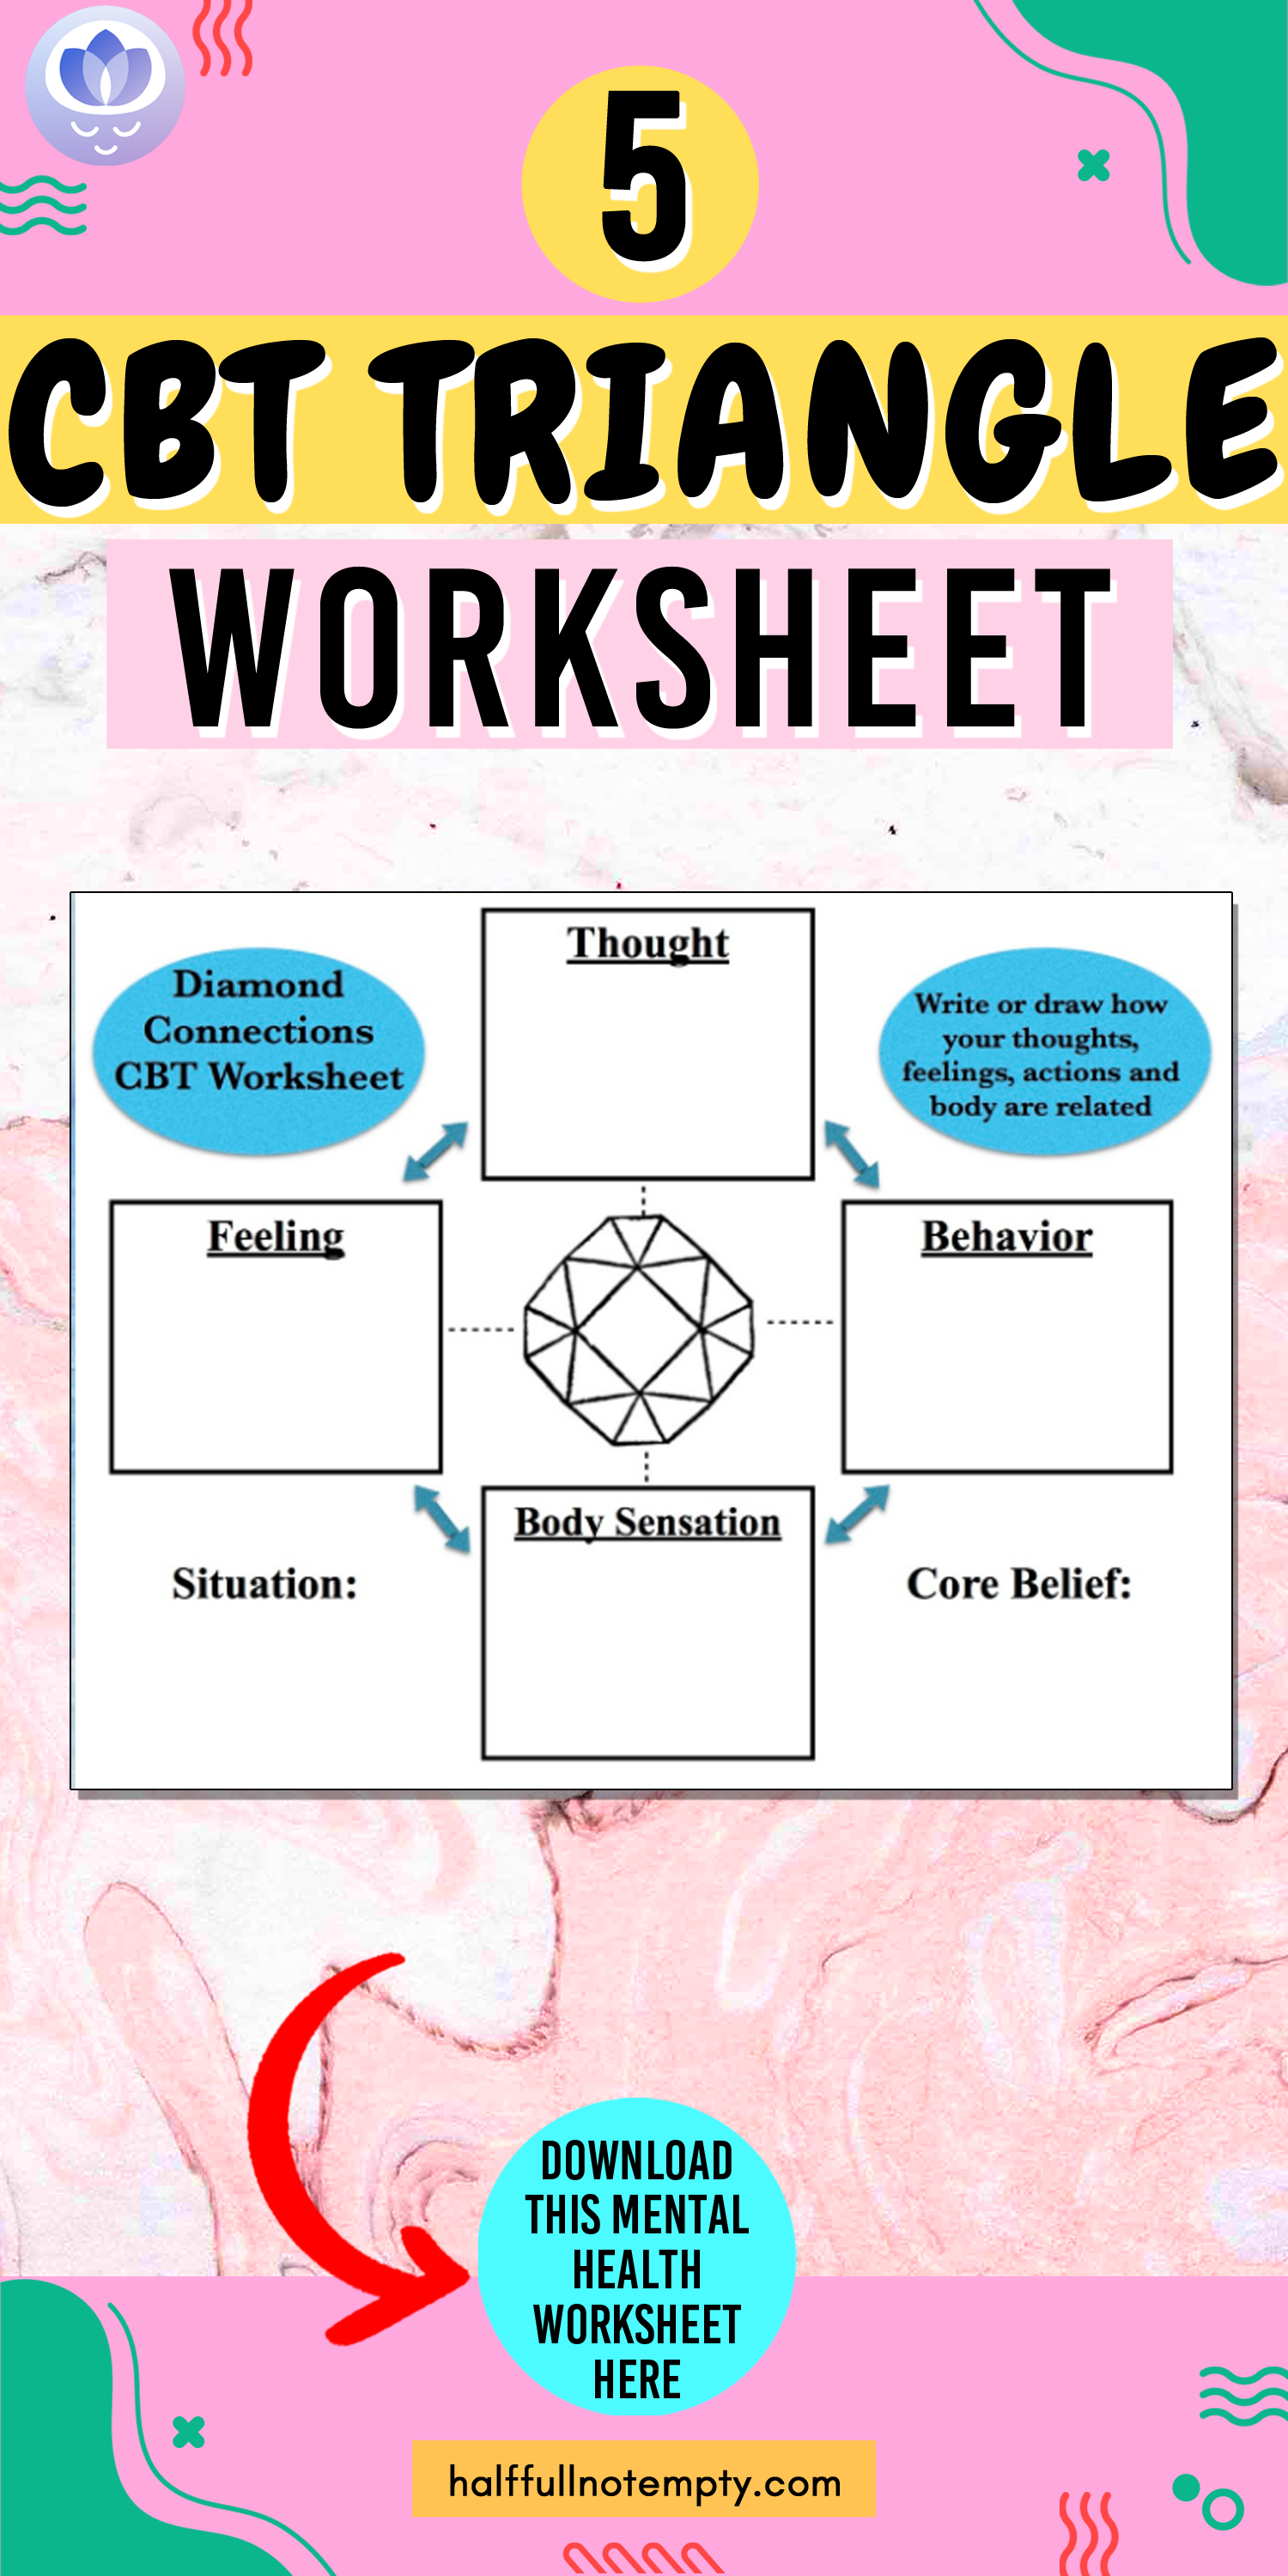 5 Cbt Triangle Worksheet In